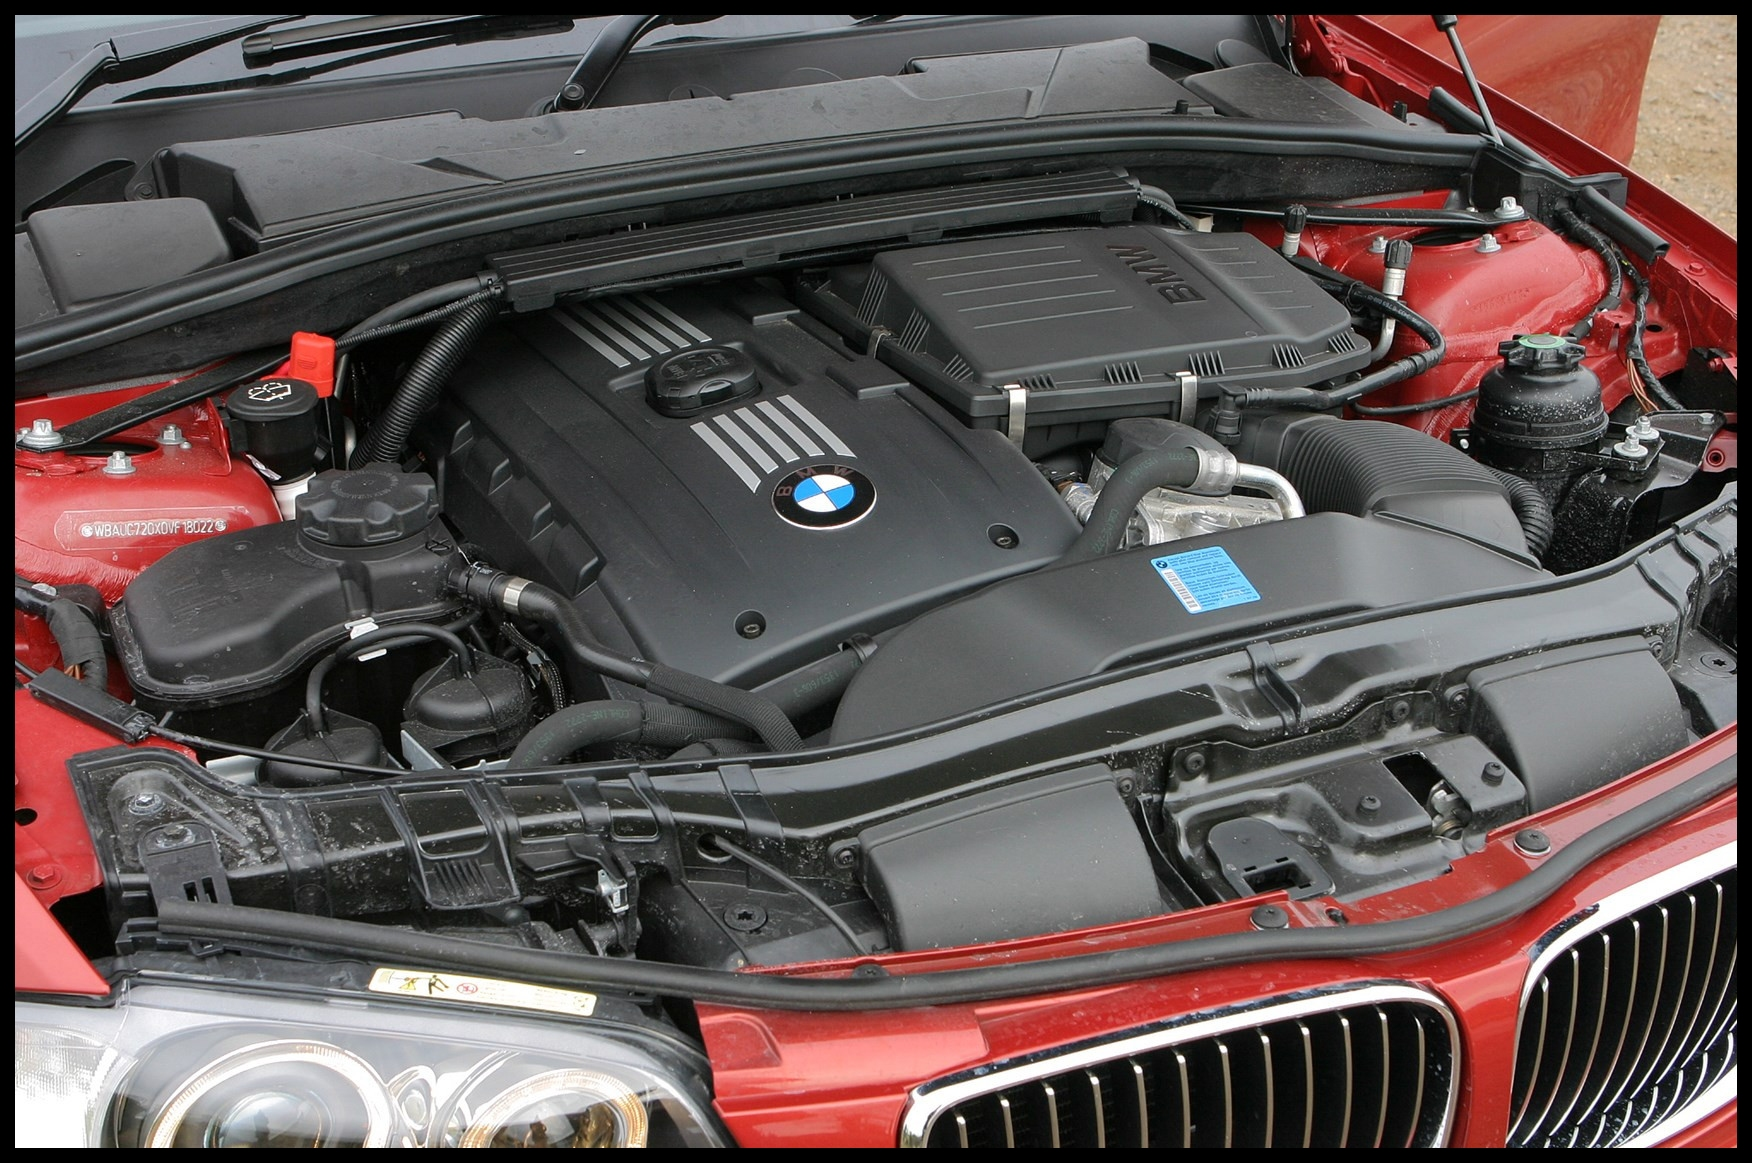 2013 Bmw 128i Specs Inspirational Bmw 1 Series Coupé 2007 2013 Features Equipment and Accessories